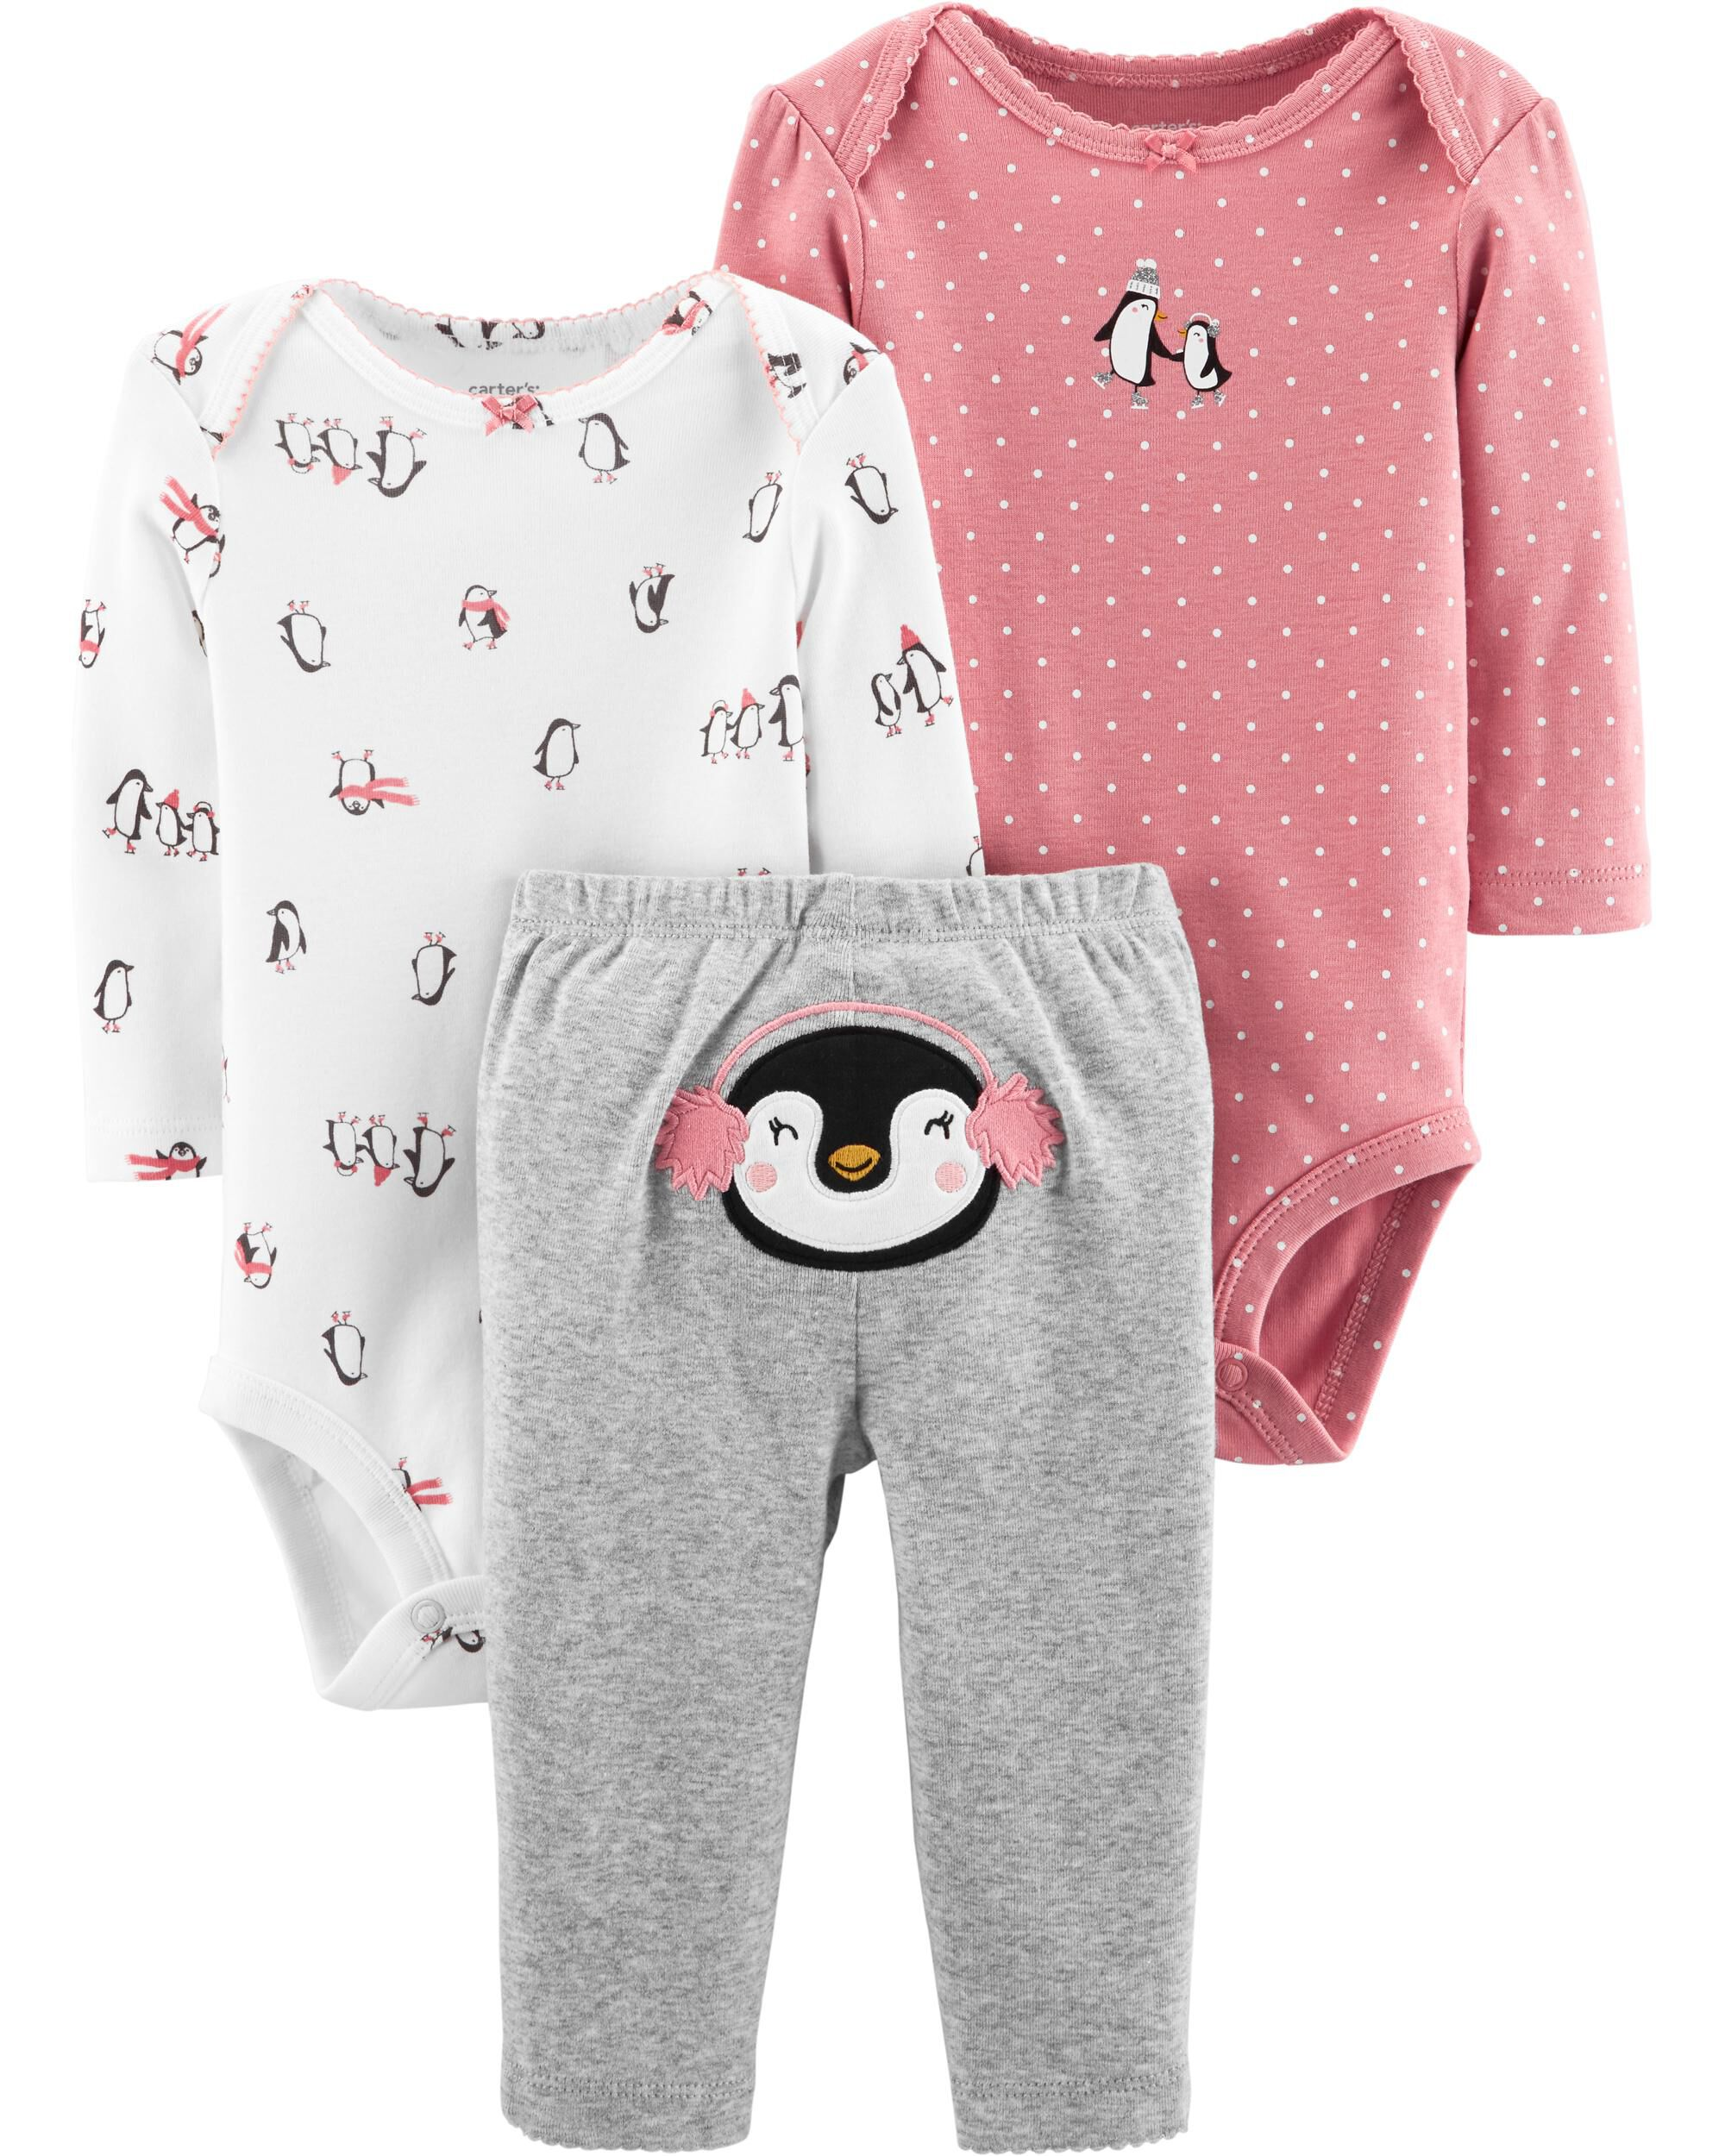 Supply Carters 3 Piece Baby Girl Micro Set~ Jacket/bodysuit/pants ~ 12 Months~free Ship Latest Fashion Outfits & Sets Girls' Clothing (newborn-5t)